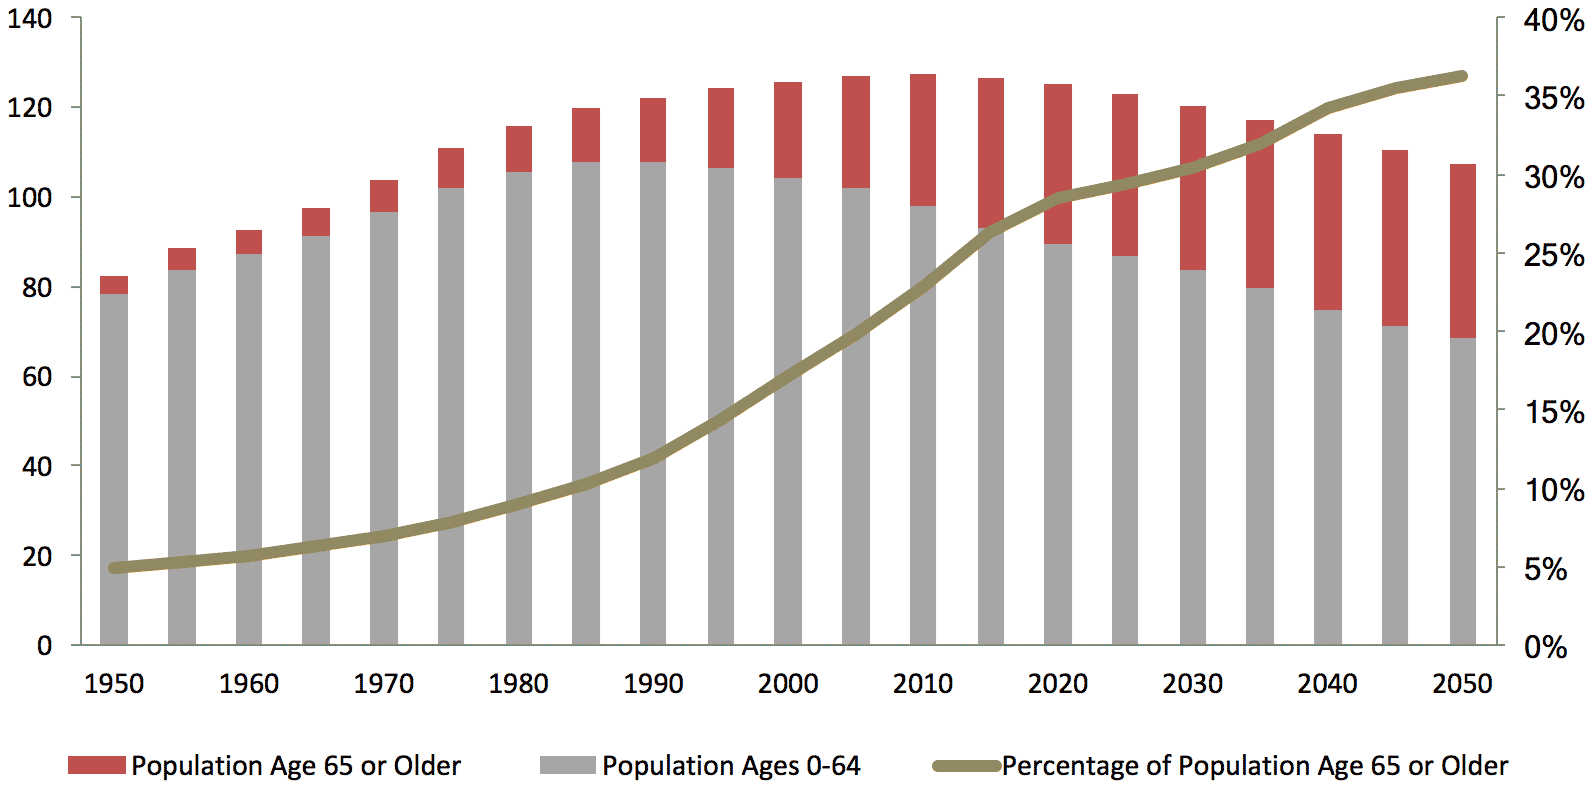 japan-population-by-age-group.png